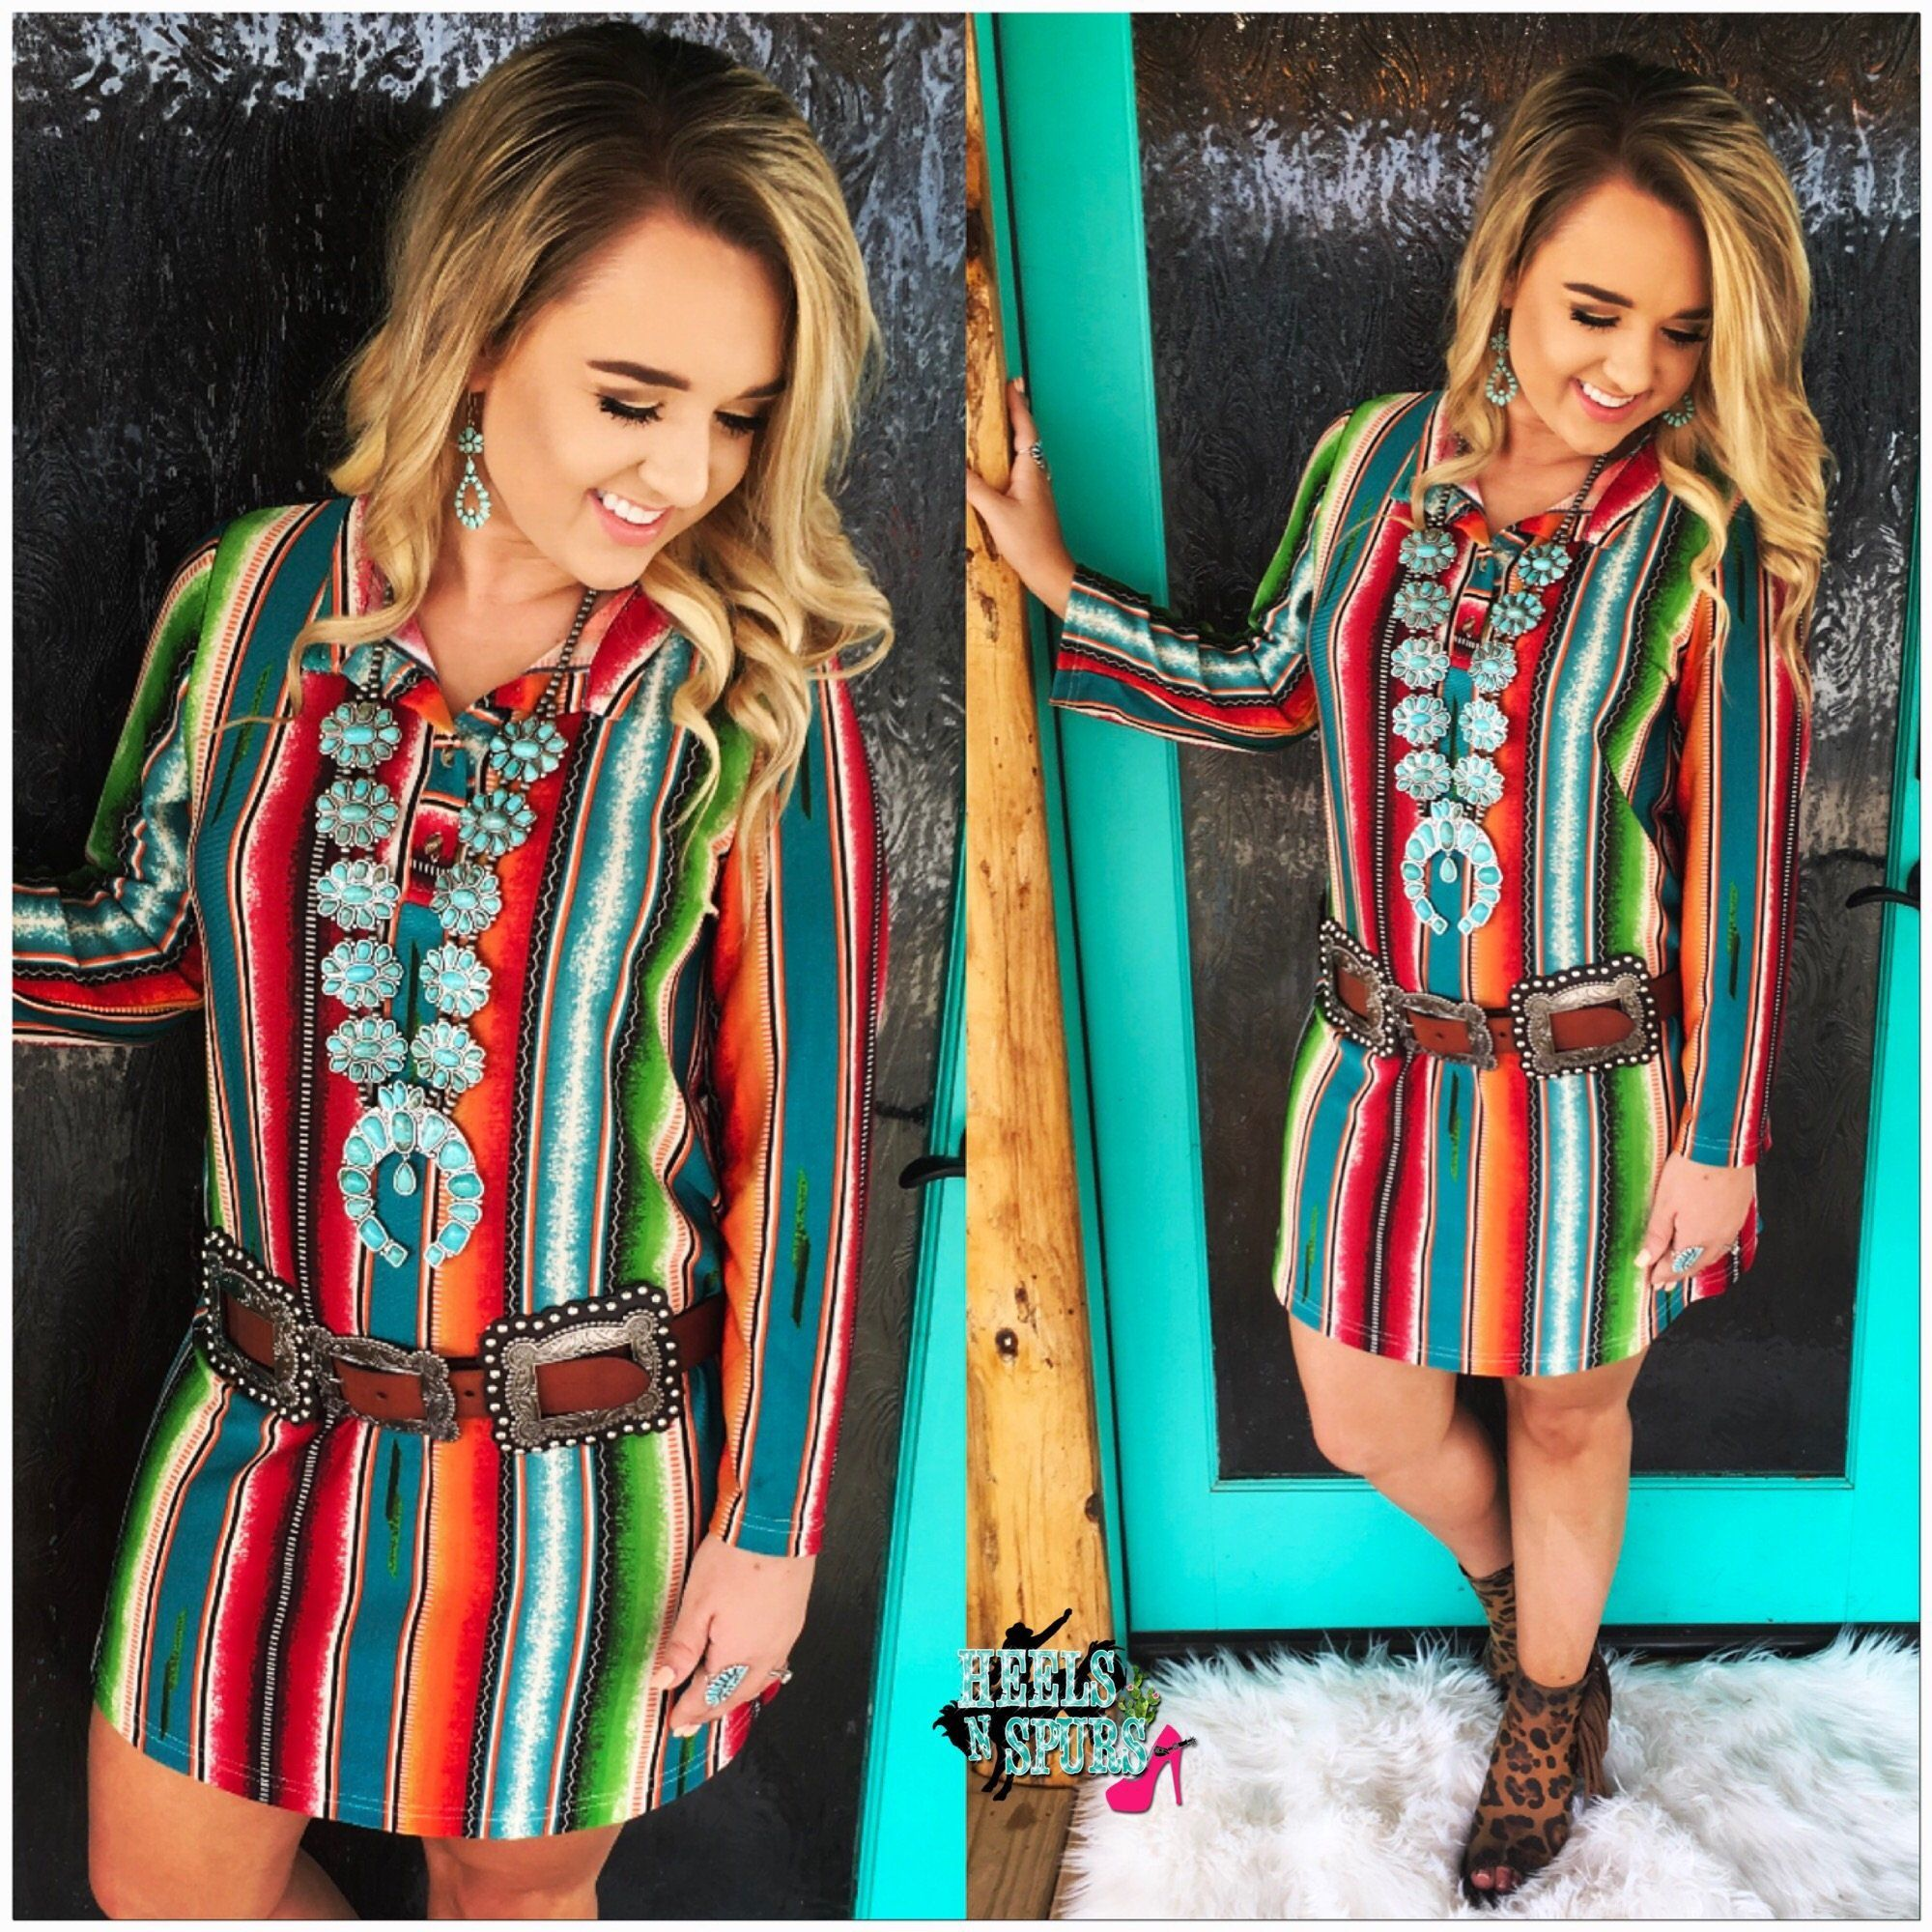 Southern Days Serape Dress  Dresses  Dresses, Fashion -8862